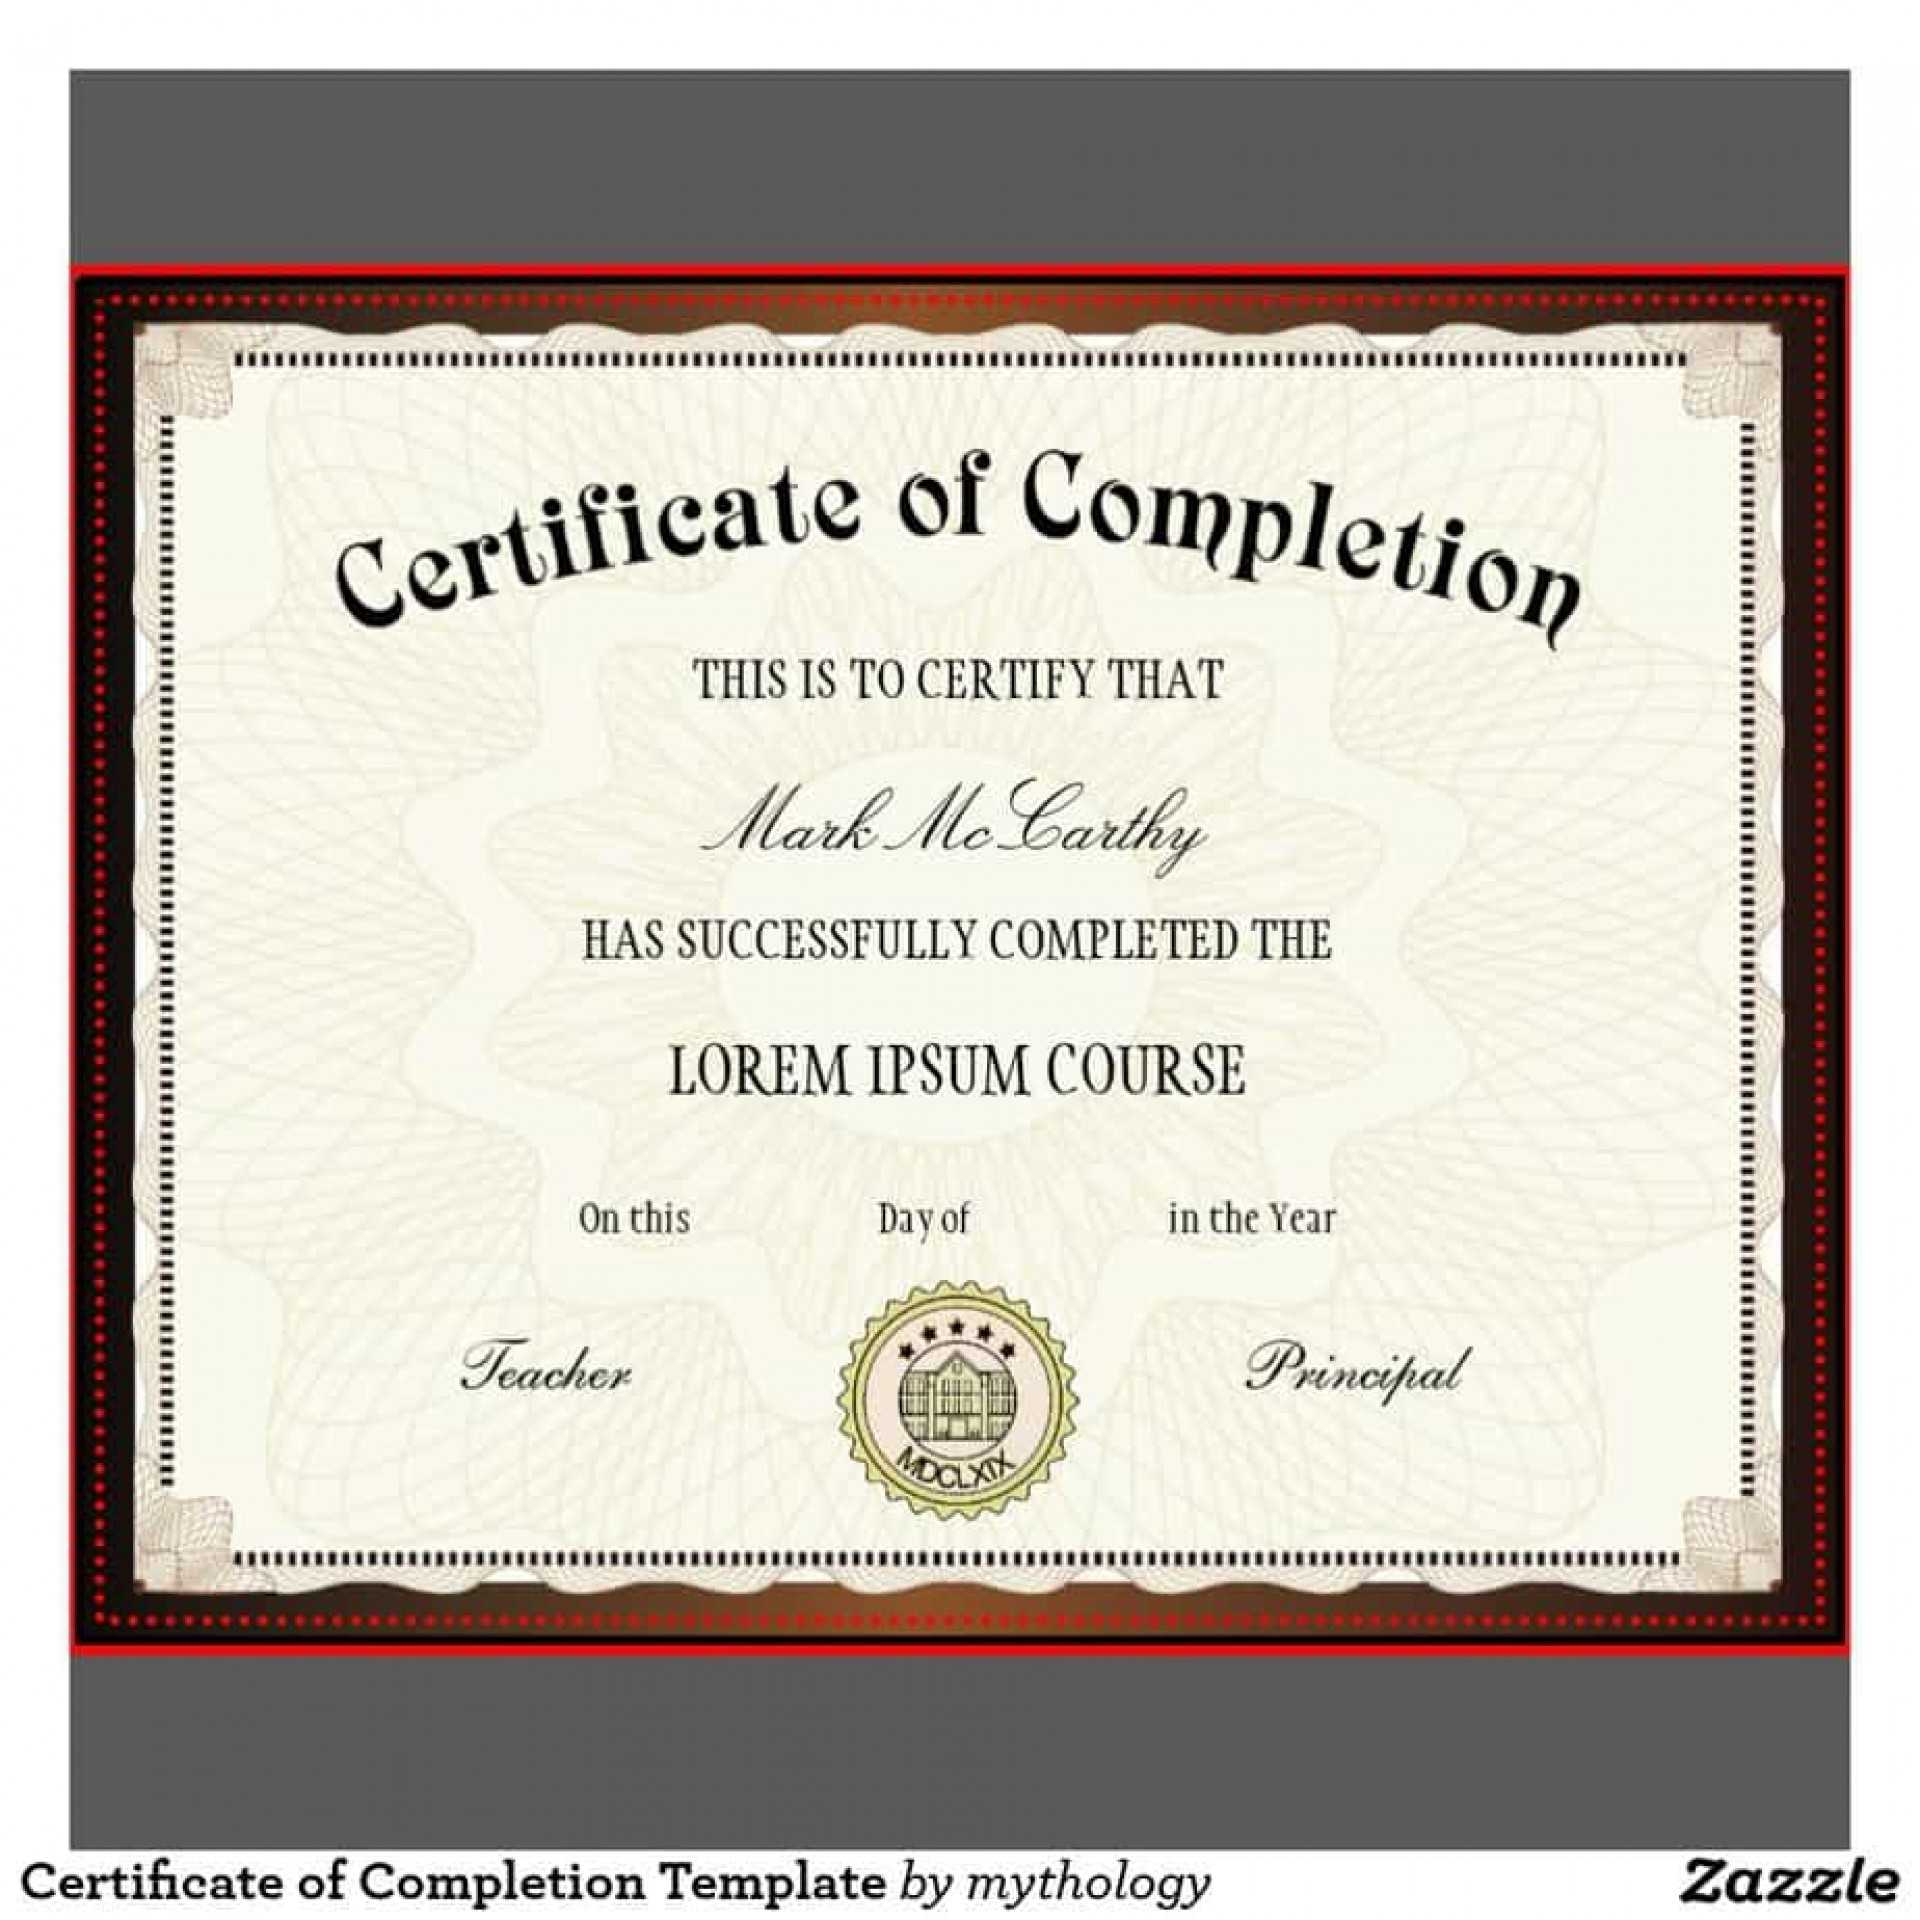 002 Template Ideas Certificateofcompletion Certificate Of inside Premarital Counseling Certificate Of Completion Template